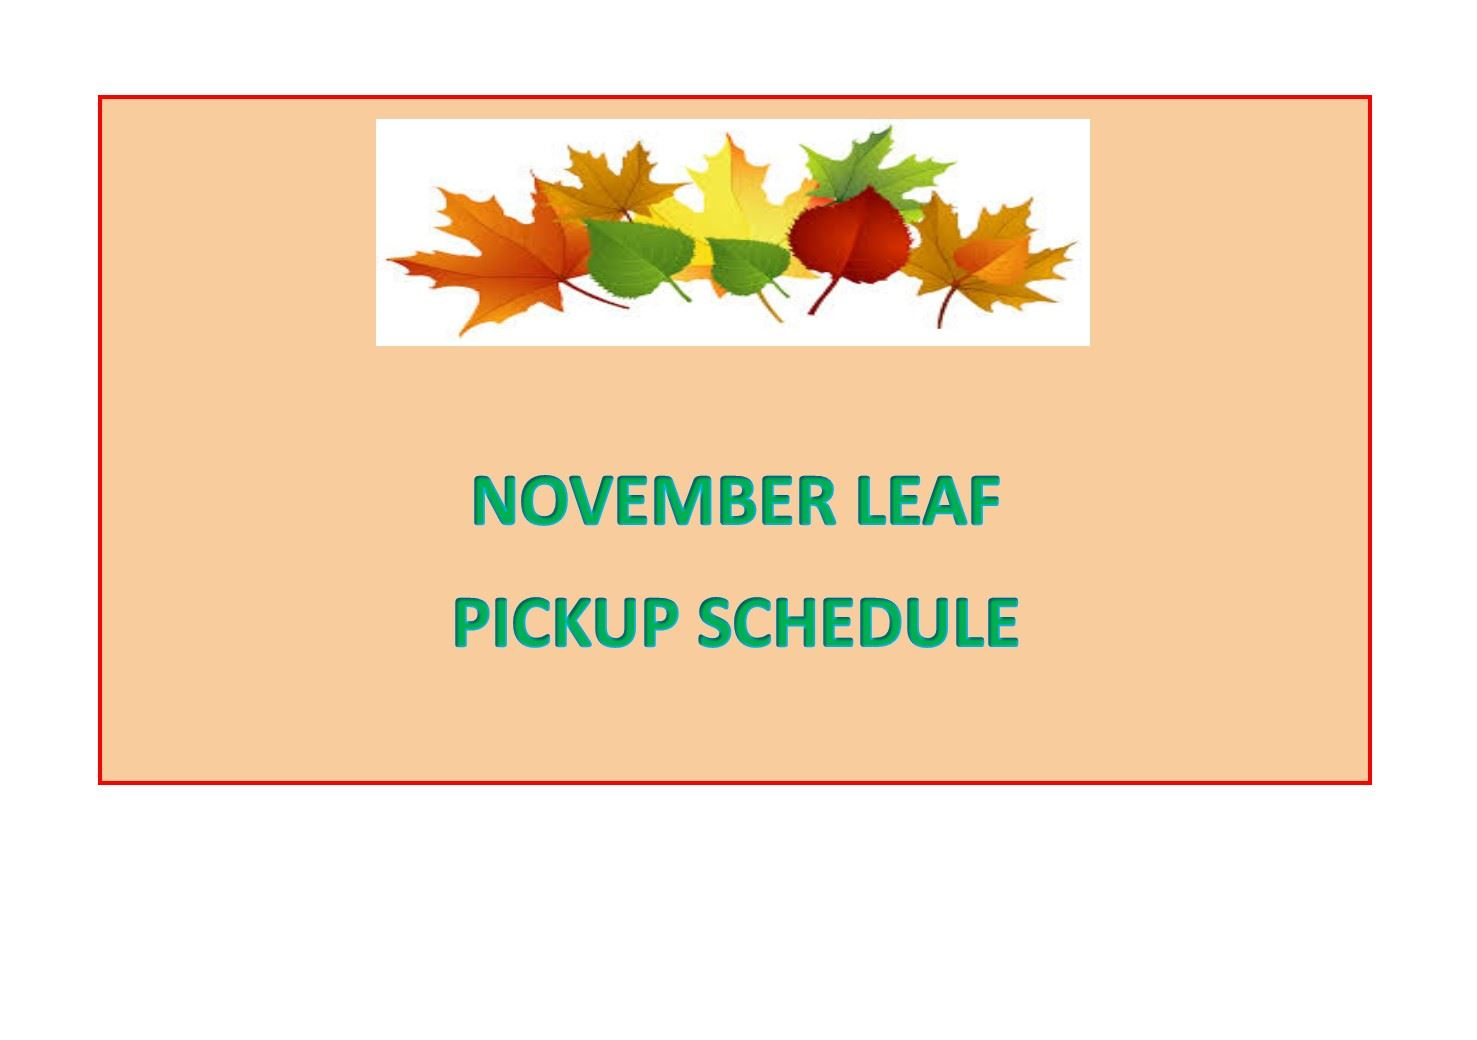 November Leaf Pickup Schedule